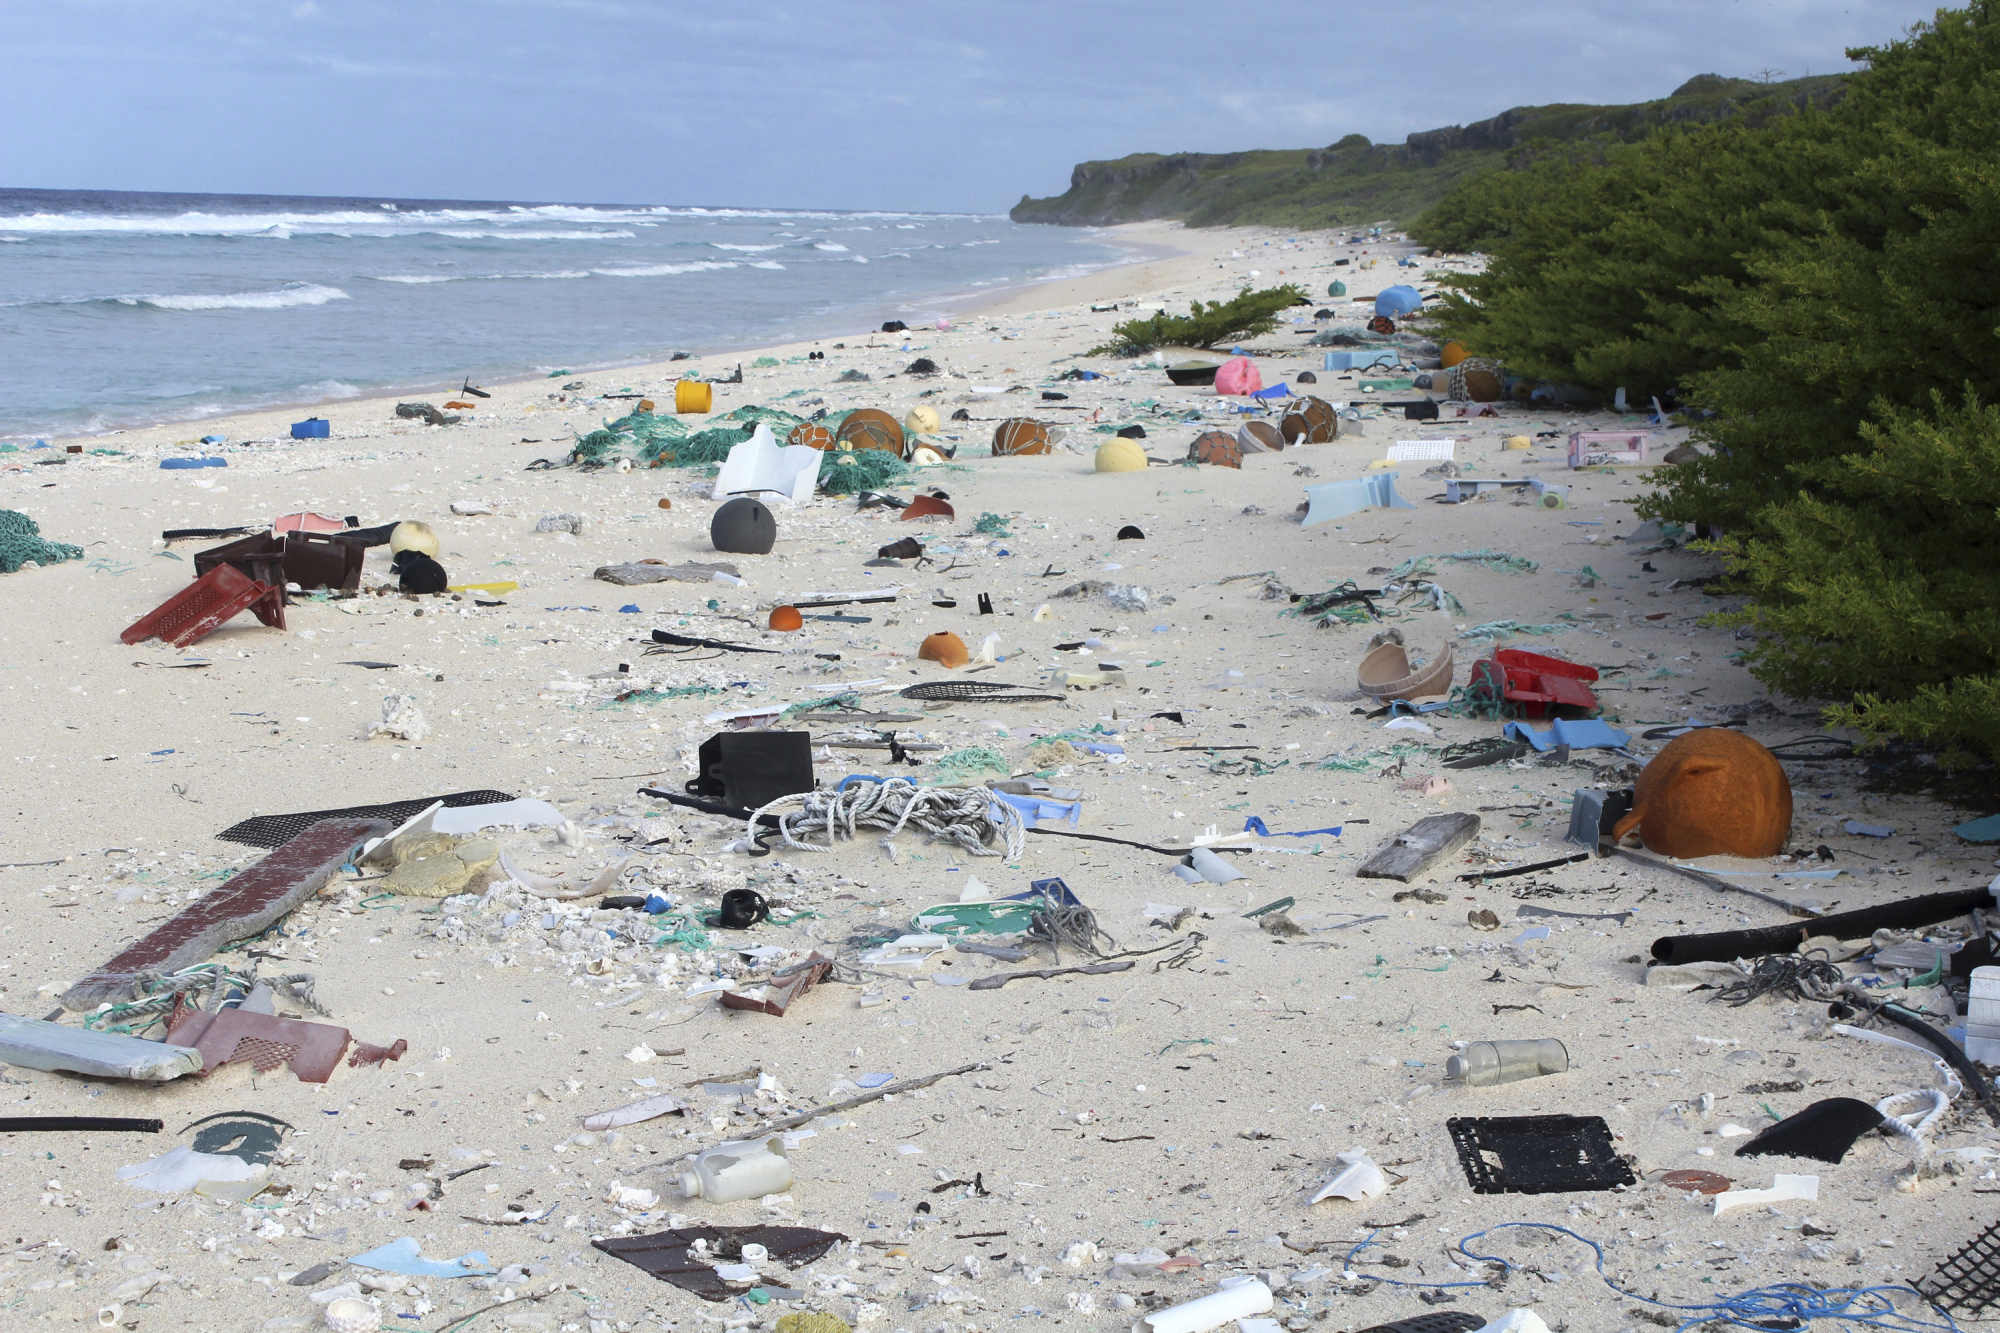 When researchers traveled to tiny, uninhabited Henderson Island in the middle of the Pacific Ocean in 2015, they were astonished to find an estimated 38 million pieces of mostly plastic trash washed up on the beaches.   AP